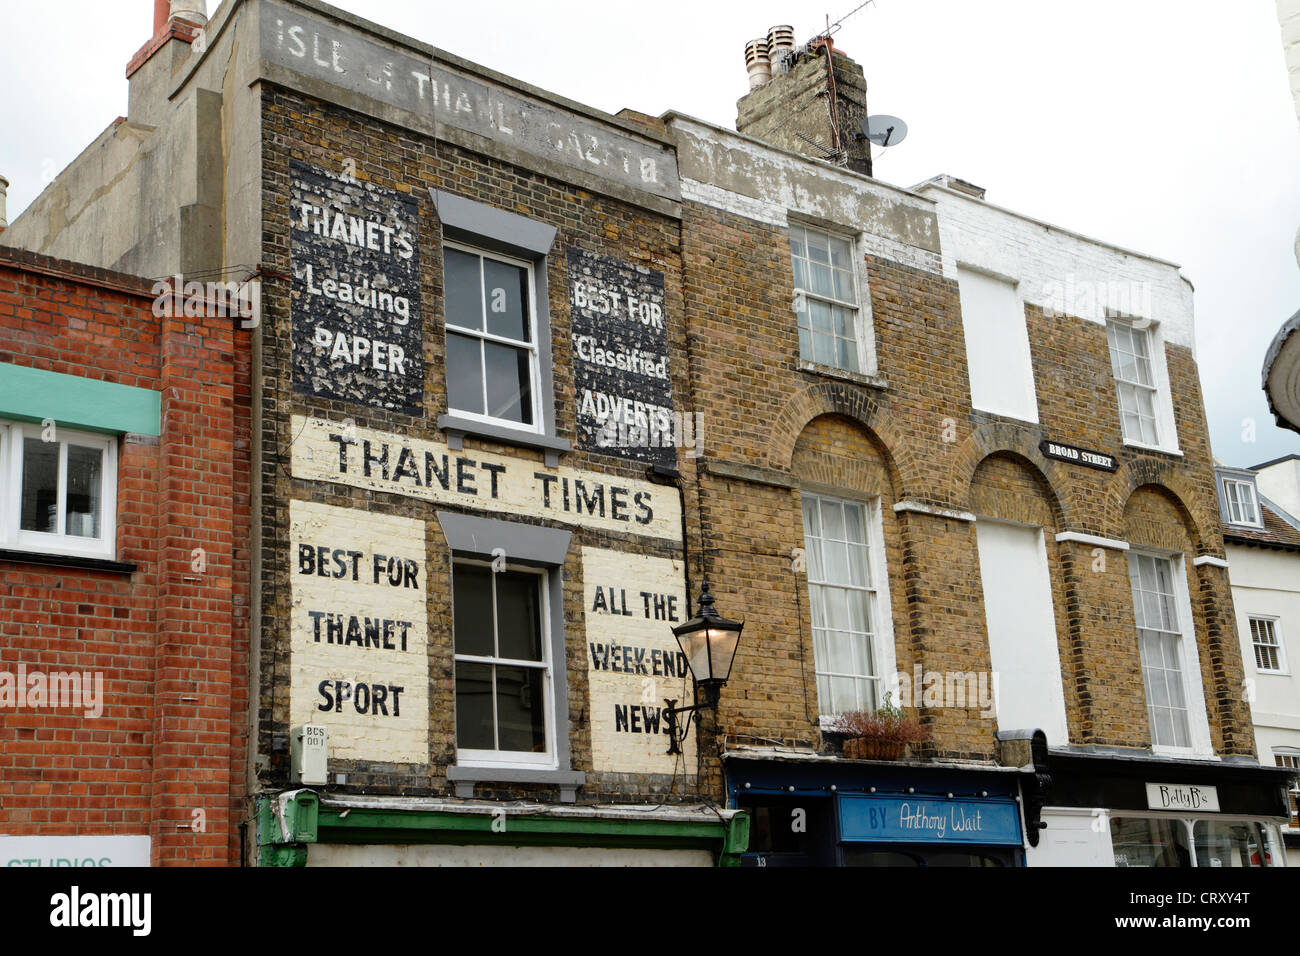 Old premises of The Thanet Times newspaper, Broad street, Margate, Kent - Stock Image